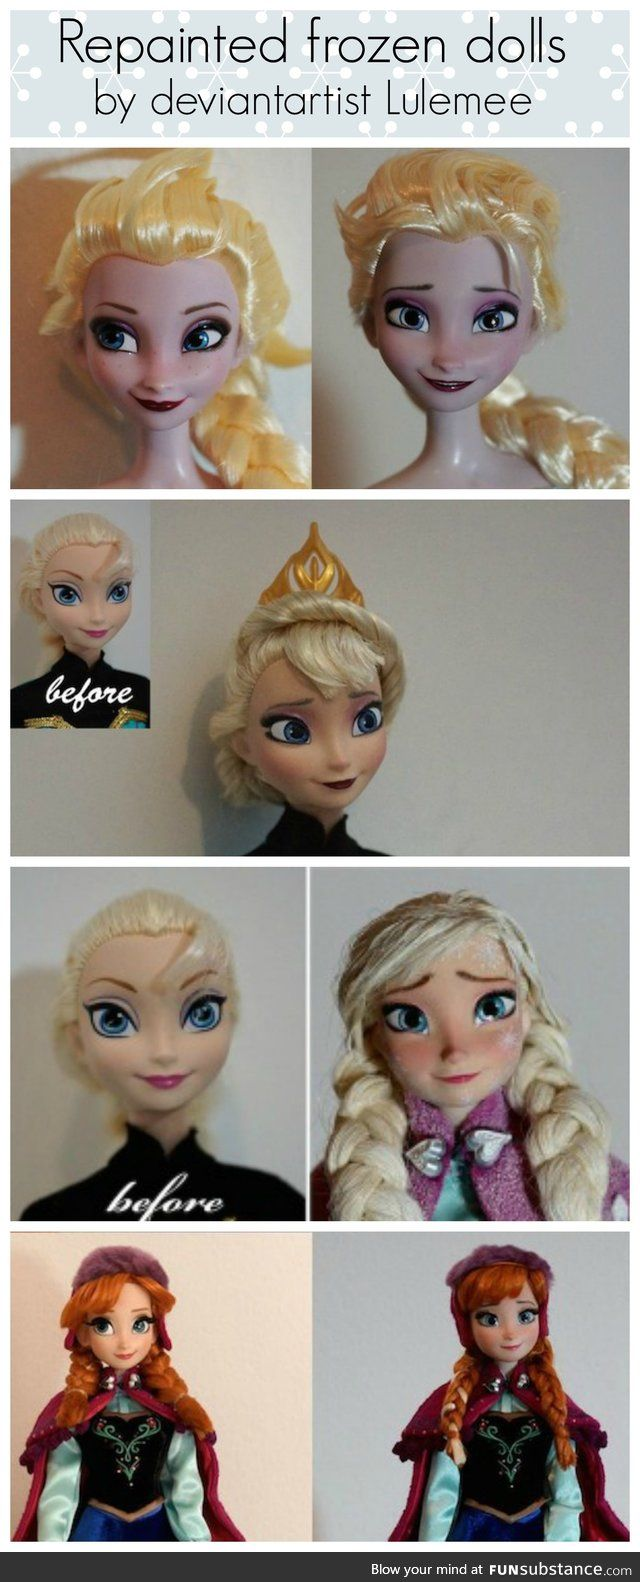 Repainted Frozen Dolls before and after